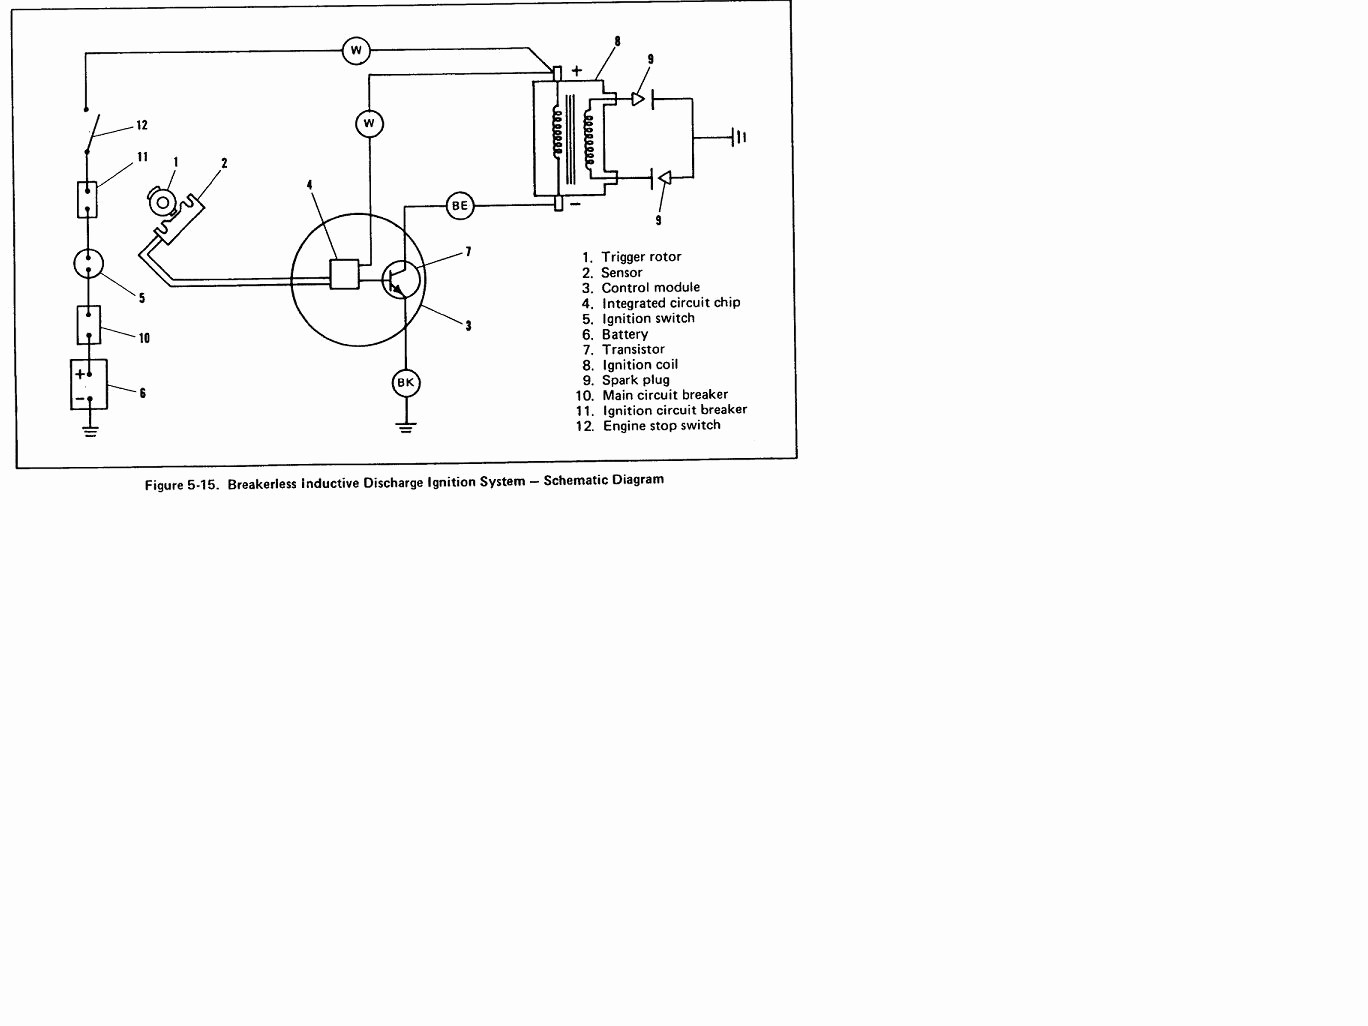 Dyna S Wiring | Online Wiring Diagram Harley Davidson Coil Wiring Diagram on harley coil wiring motorcycle, harley wiring harness diagram, harley davidson coil cover, harley points coil wiring, harley davidson electrical diagram, harley ignition wiring, harley davidson starter diagram, harley wiring diagram wires, sportster chopper wiring diagram, harley dual plug wiring diagrams, 1999 harley softail wiring diagram, 1990 harley wiring diagram, simple harley wiring diagram, dyna 2000i ignition wiring diagram, 1999 sportster wiring diagram,